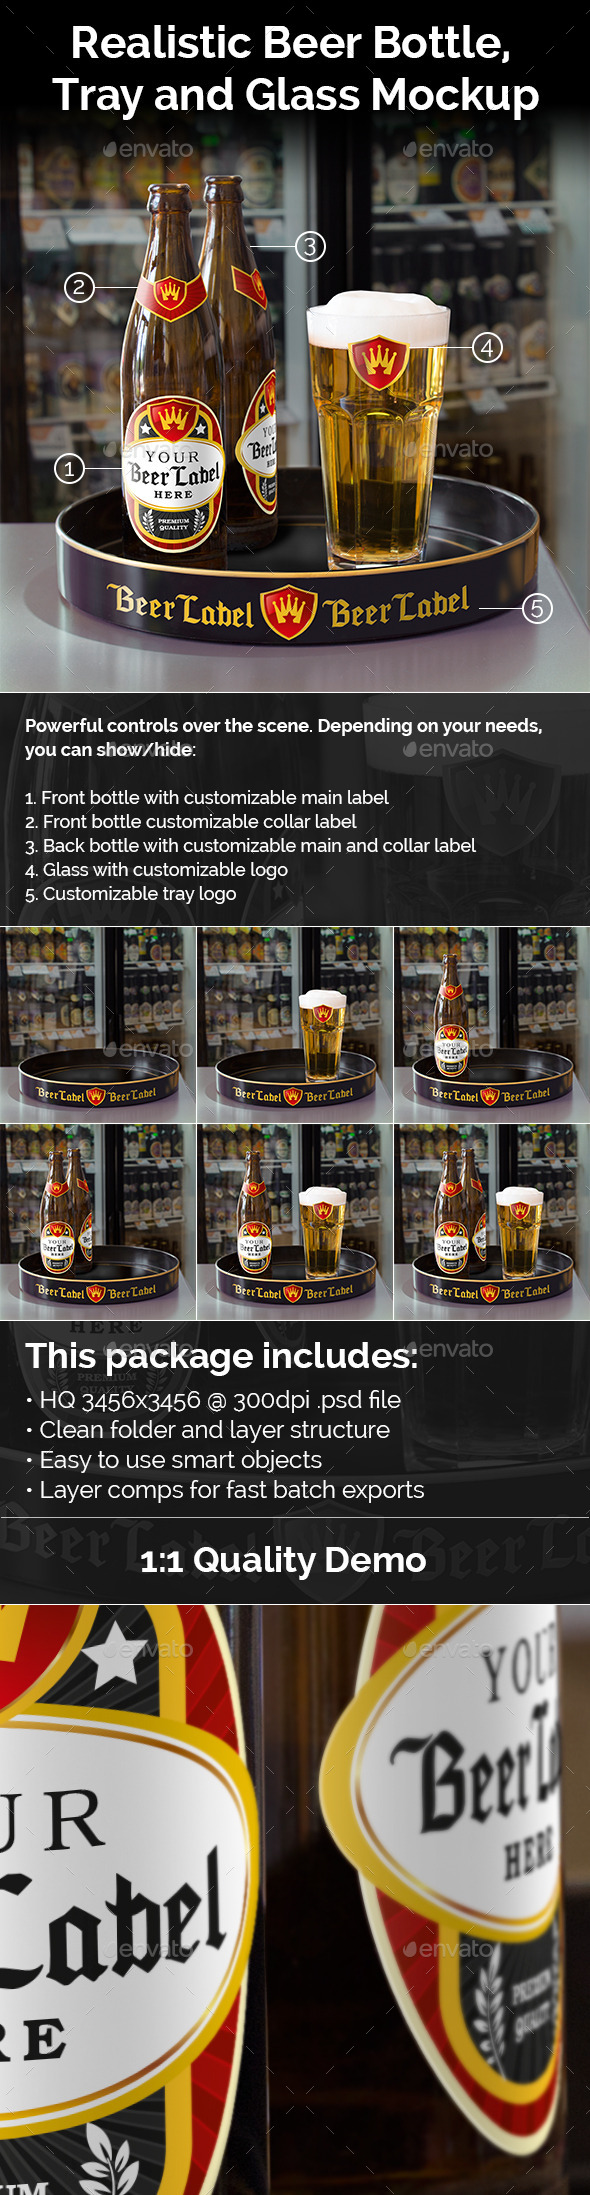 Realistic Beer Bottle, Tray and Glass Mockup - Food and Drink Packaging